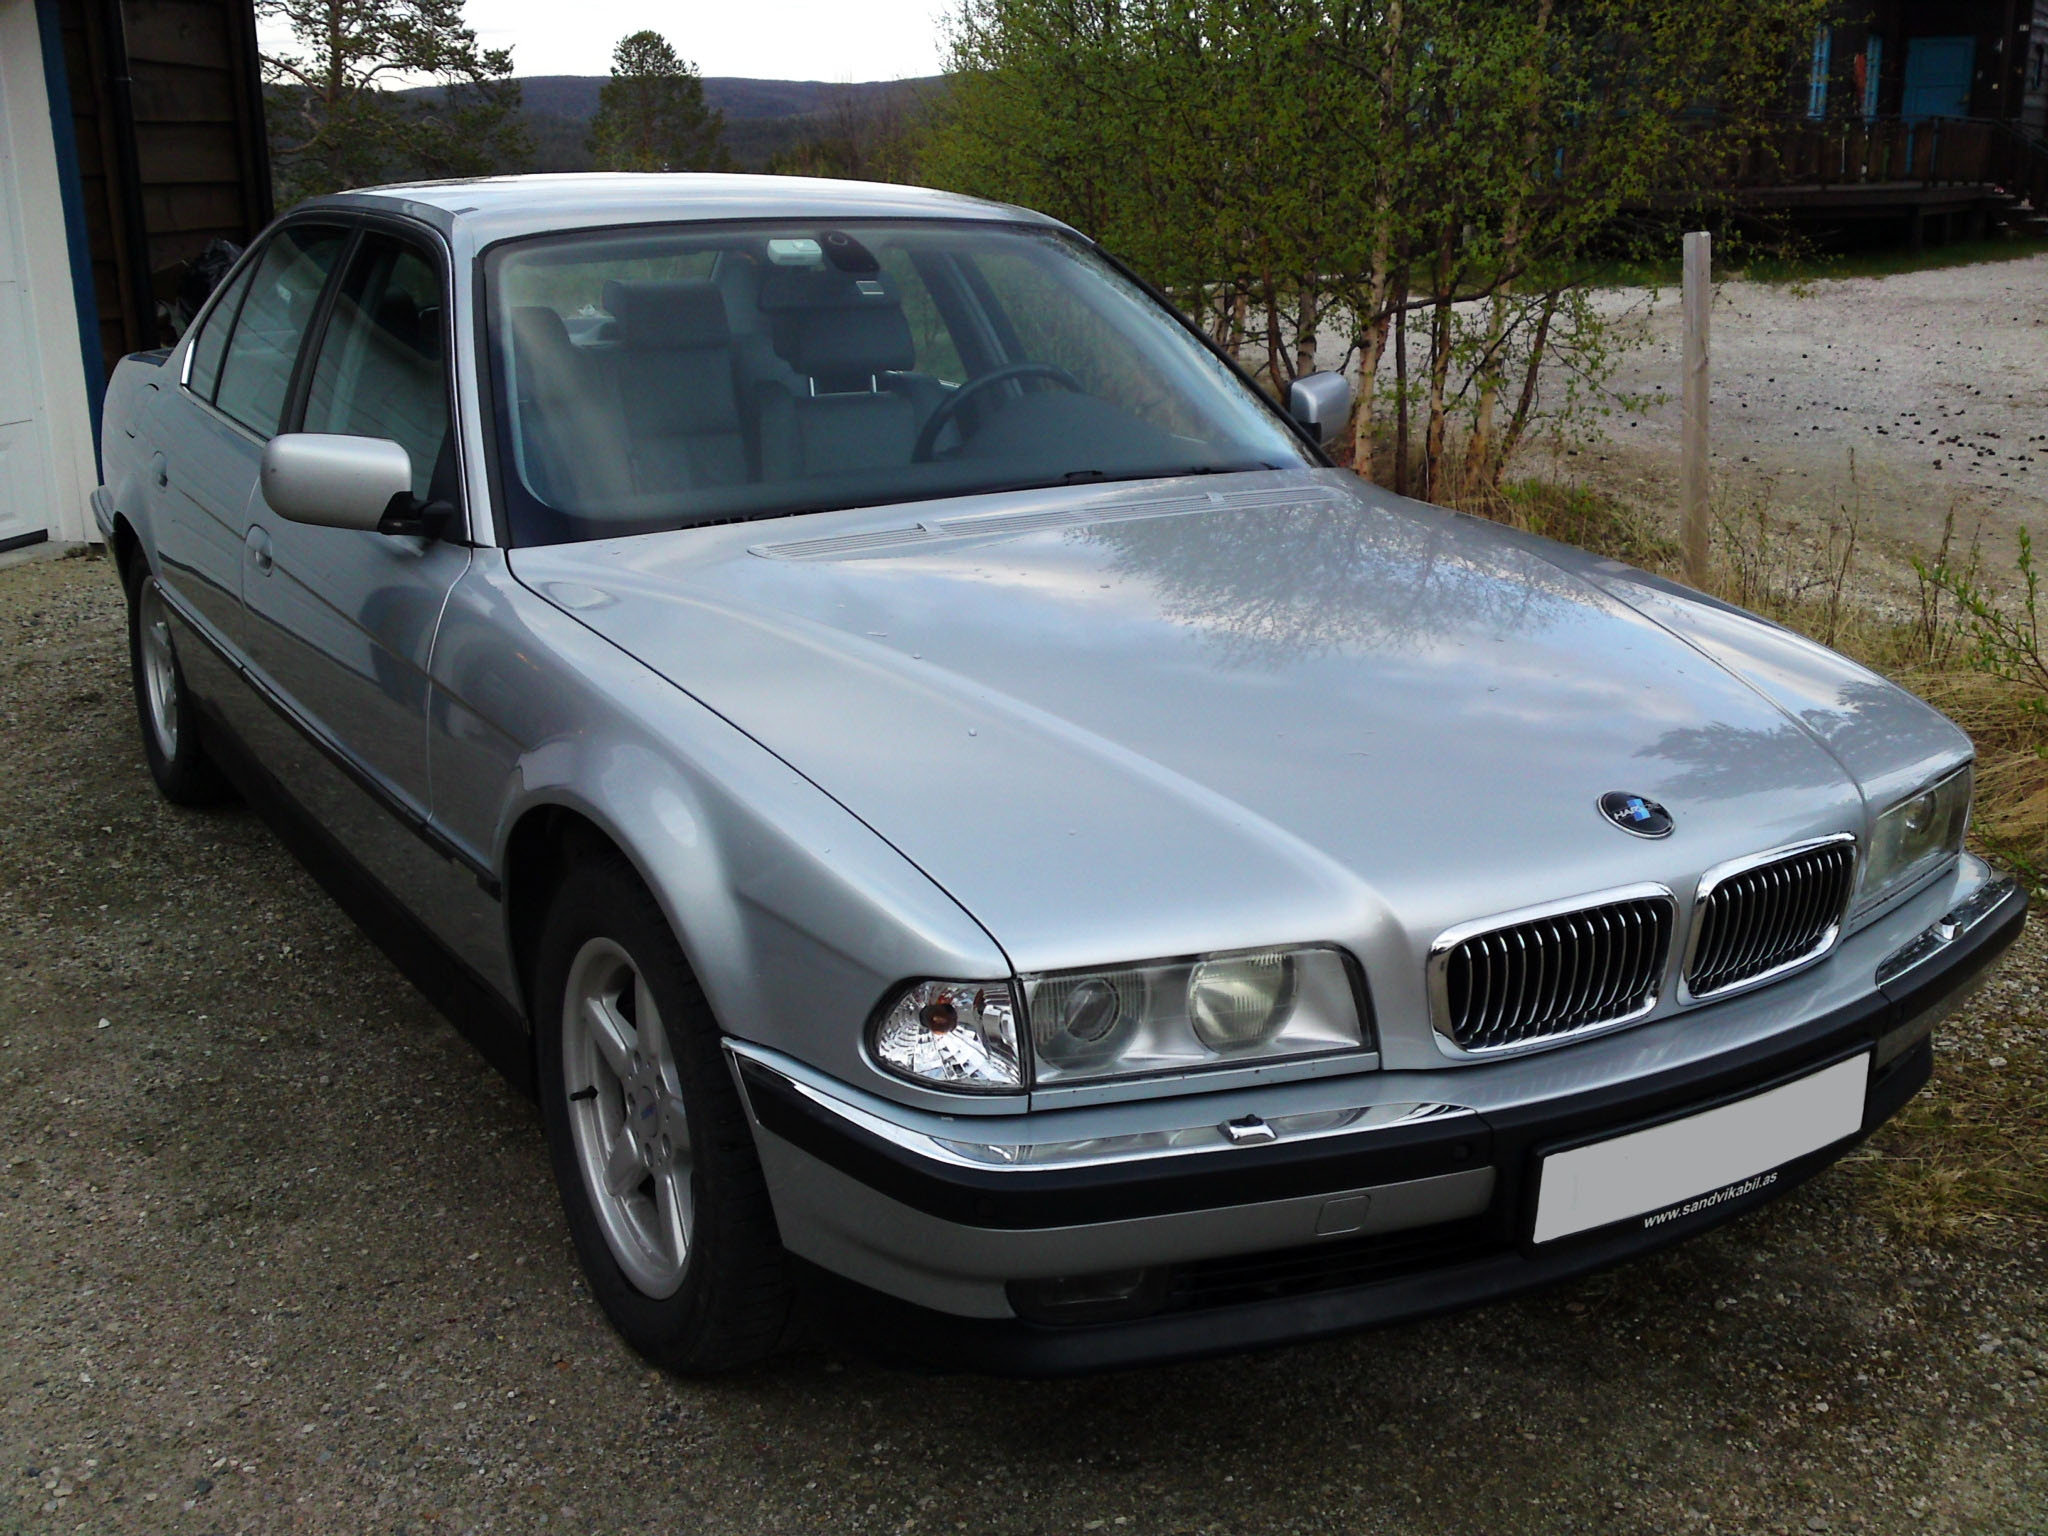 oea_69 1998 BMW 7 Series 14013909